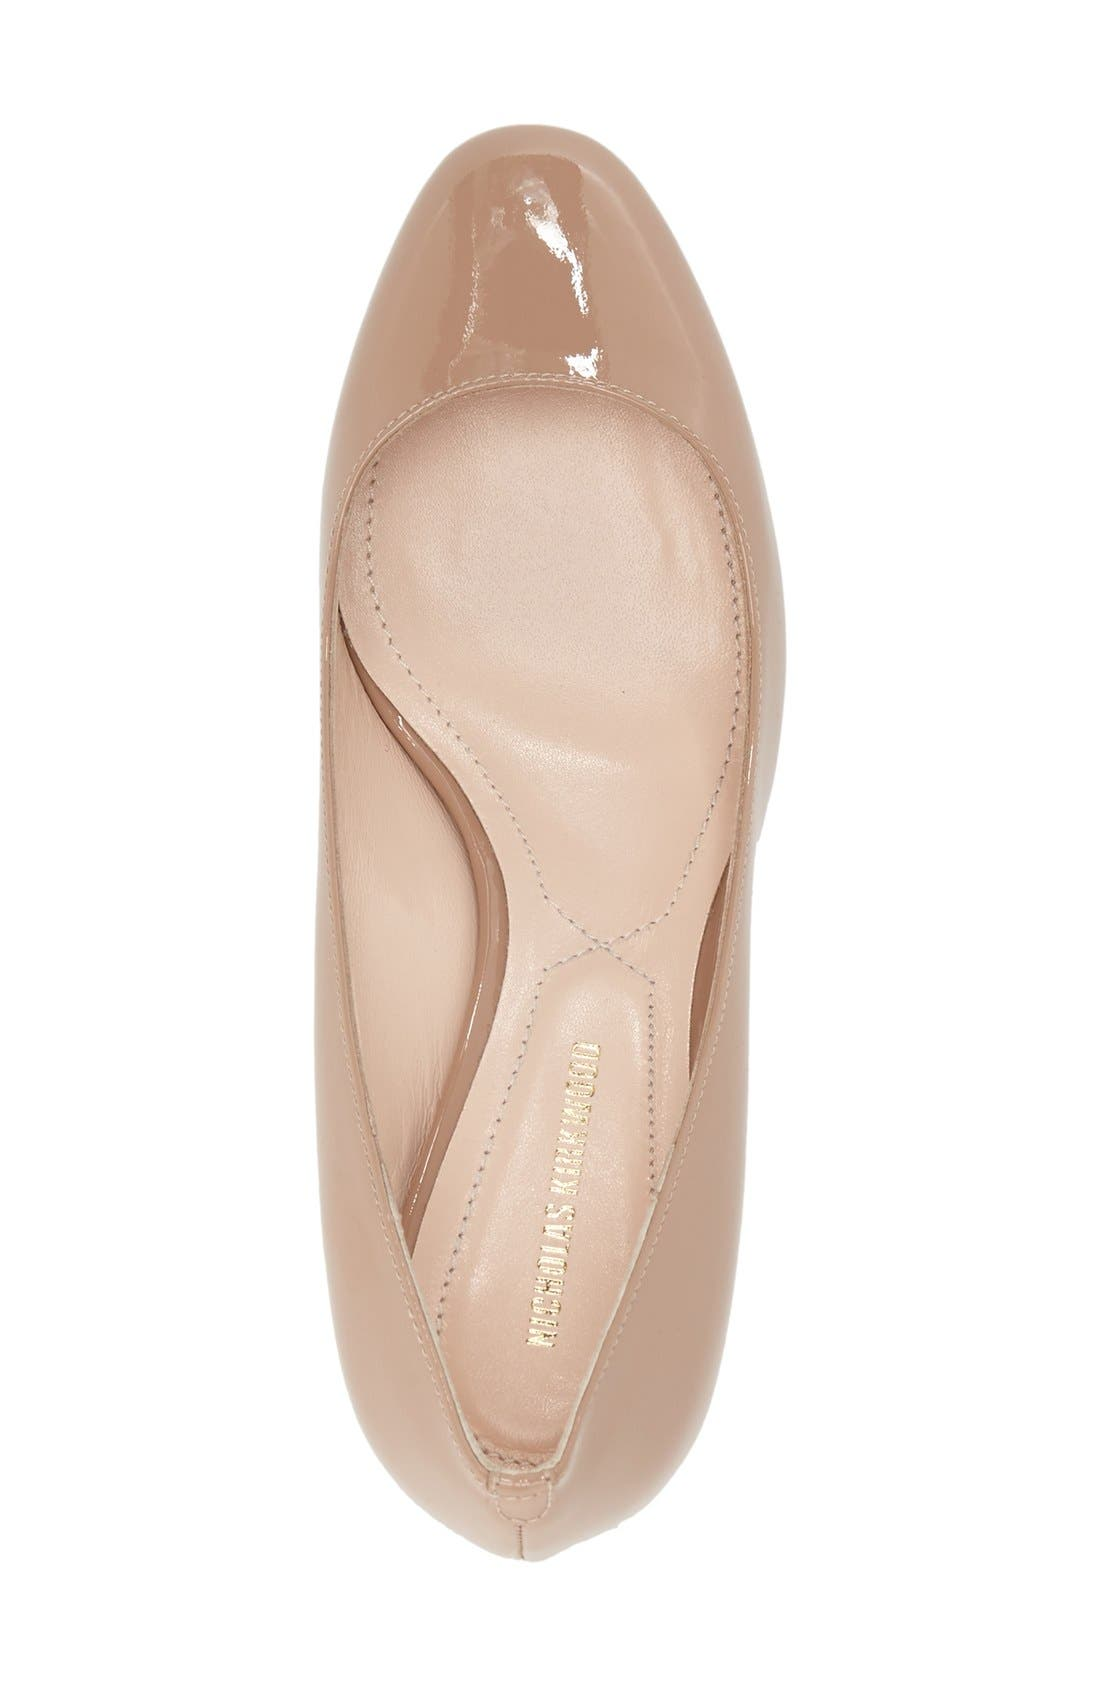 Alternate Image 3  - Nicholas Kirkwood 'Briona' Round Toe Pump (Women)